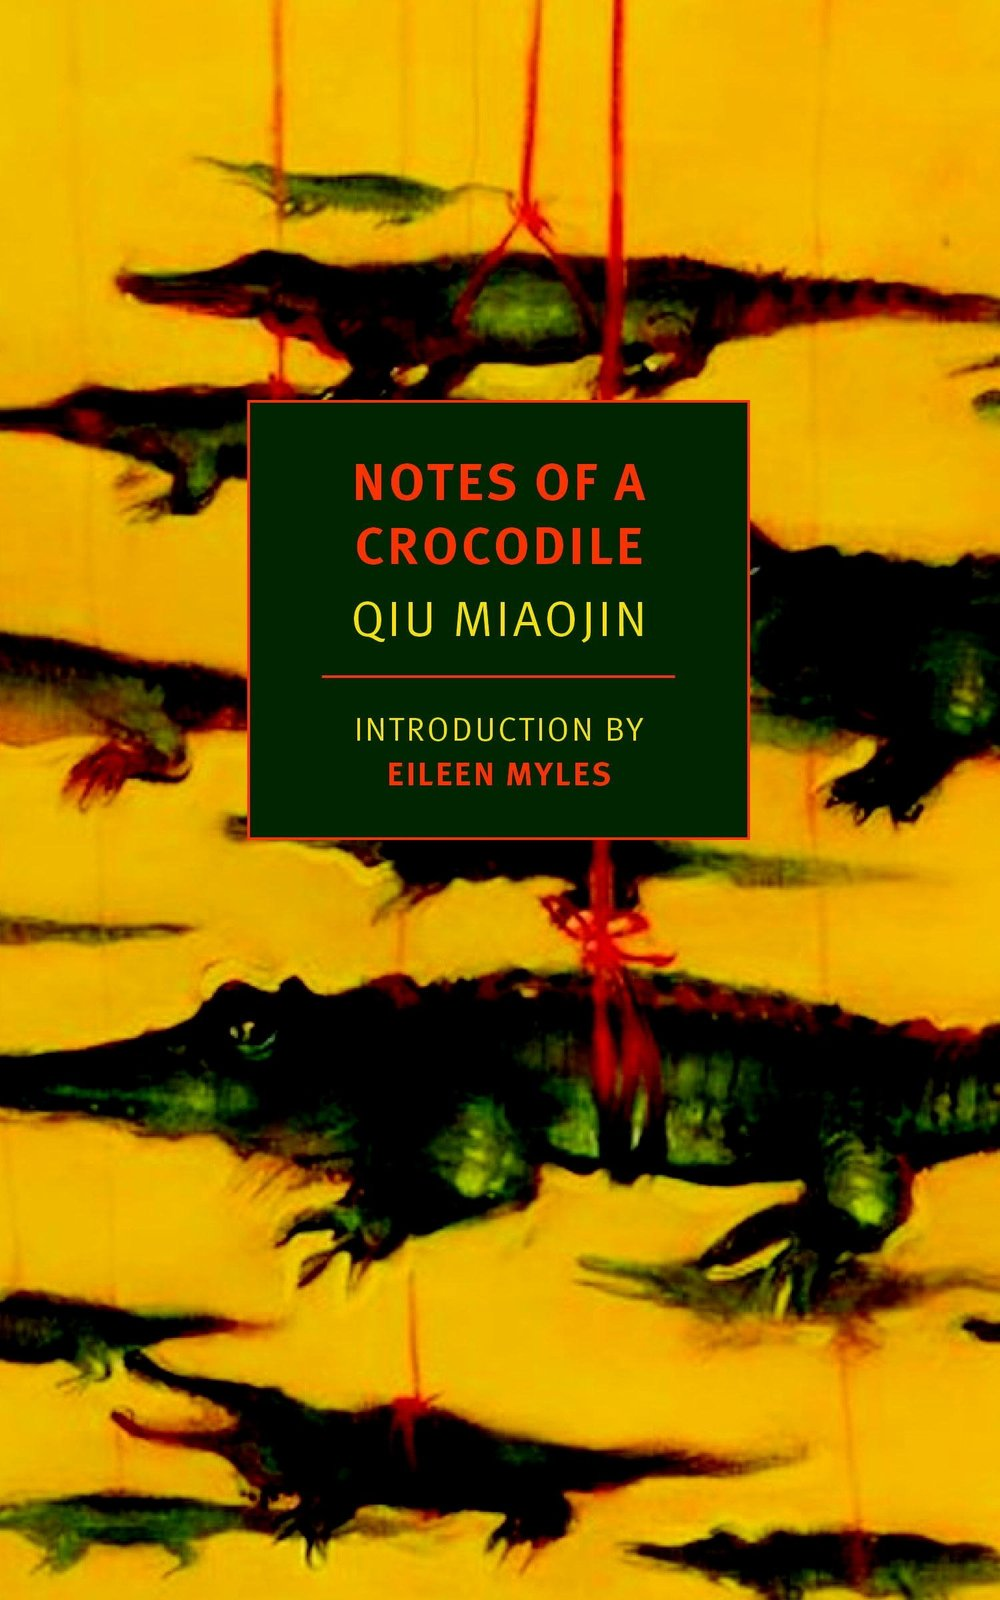 Jamia - Notes of a Crocodile by Qiu Miaojin, translated by Bonnie HuiePublished by: NYRBChina